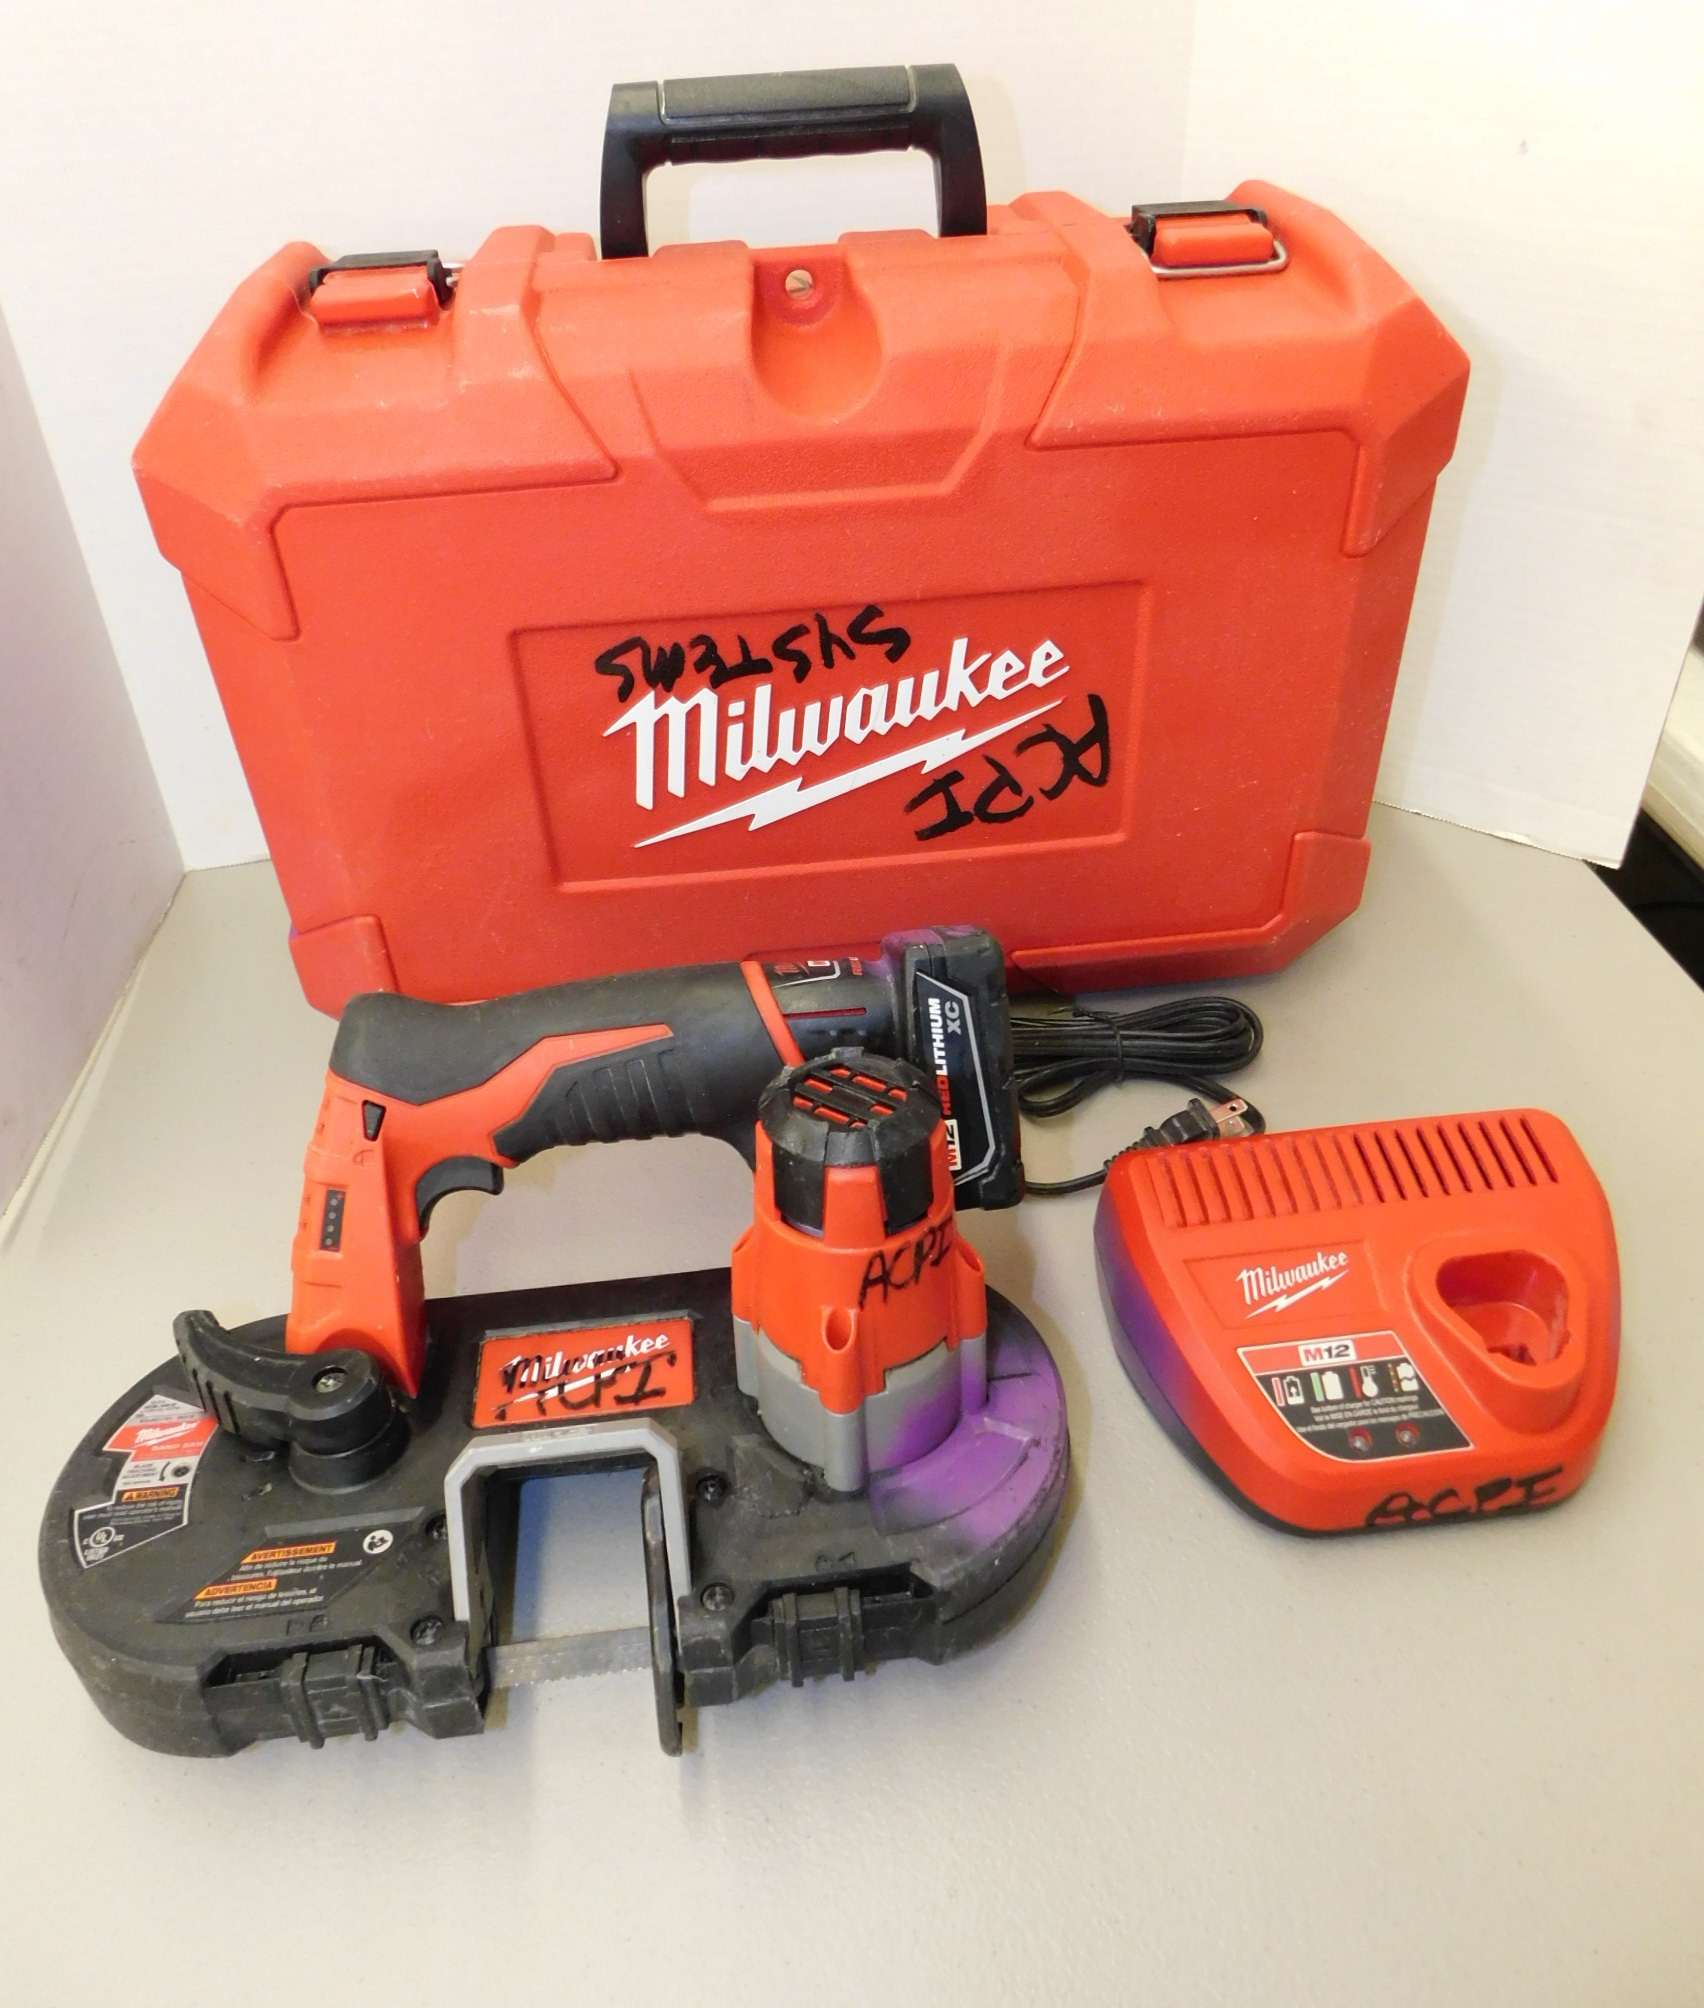 Lot 263 - Milwaukee Model 2429-20 12V Cordless Portable Bandsaw with Battery and Charger